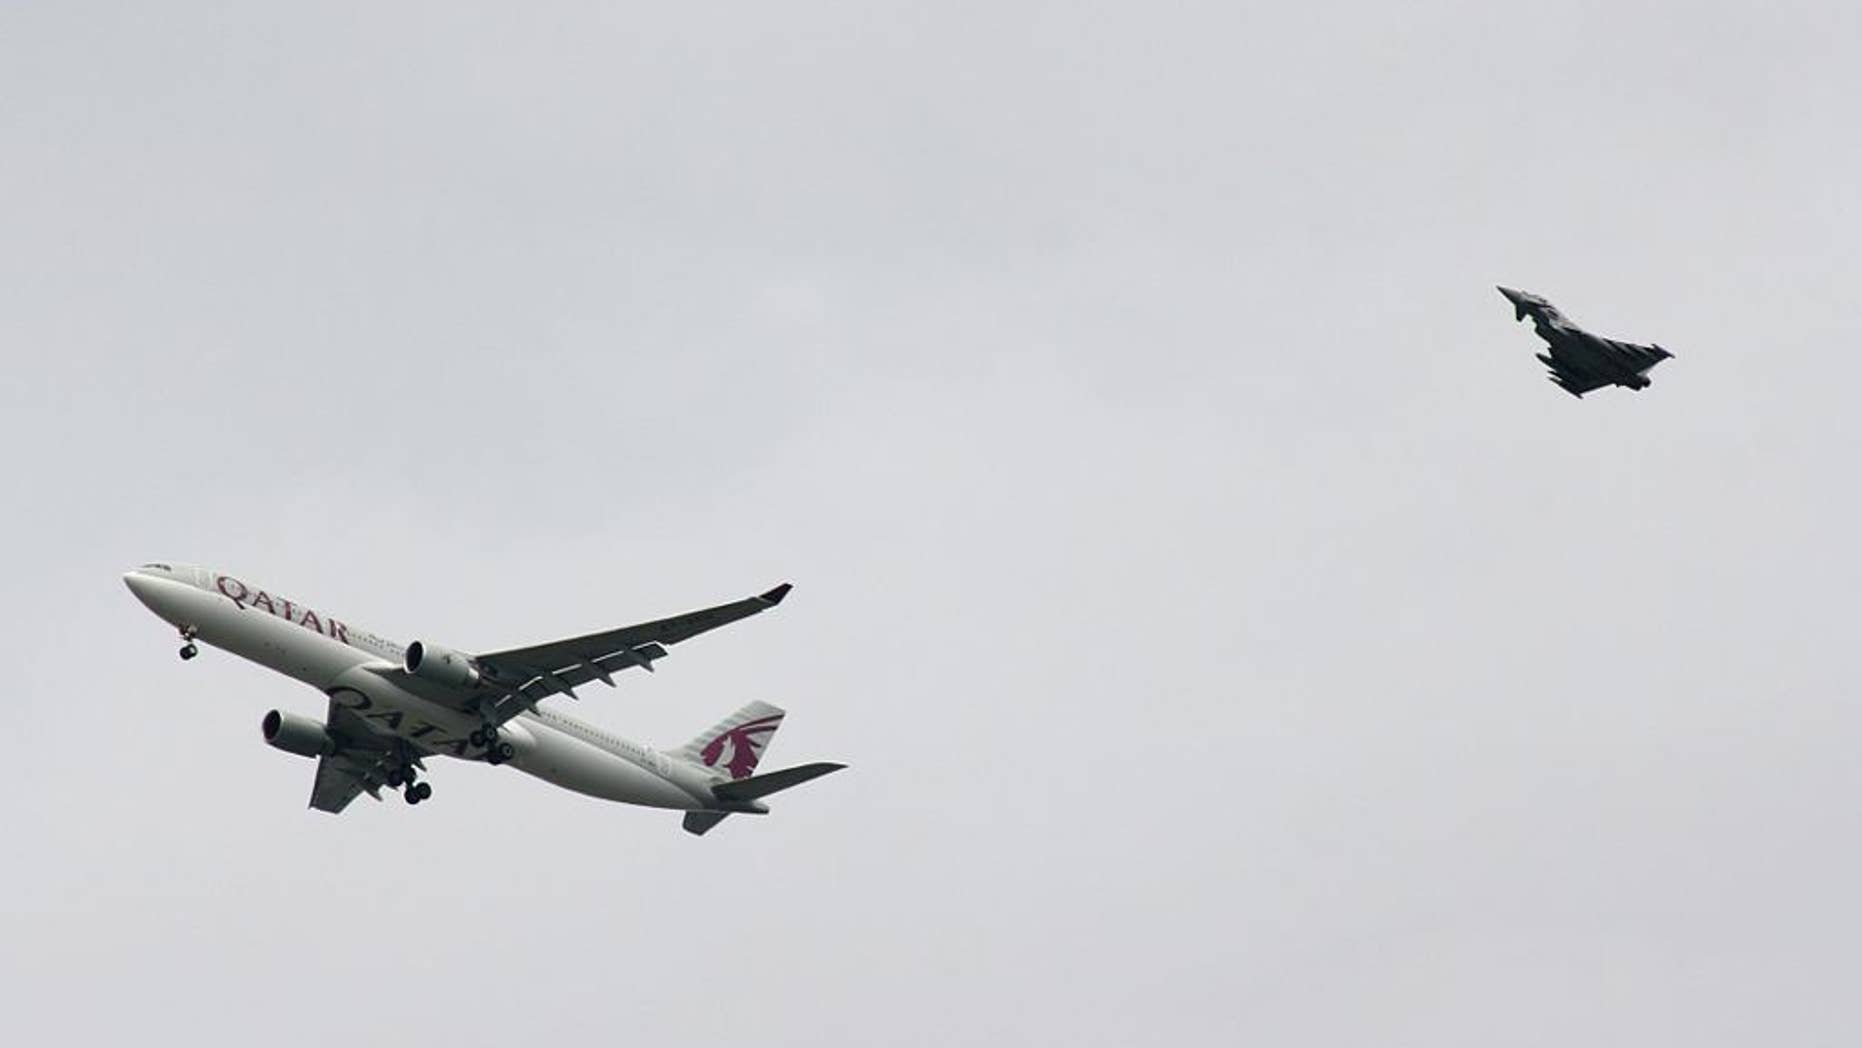 A military fighter jet escorts a passenger jet as it comes in to land at Manchester airport, Manchester, England, Tuesday, Aug. 5, 2014. Police say they have arrested a man on suspicion of making a hoax bomb threat after Qatar Airways Flight 23 landed with a military fighter escort at Britain's Manchester Airport. (AP Photo/Matthew Cossar)